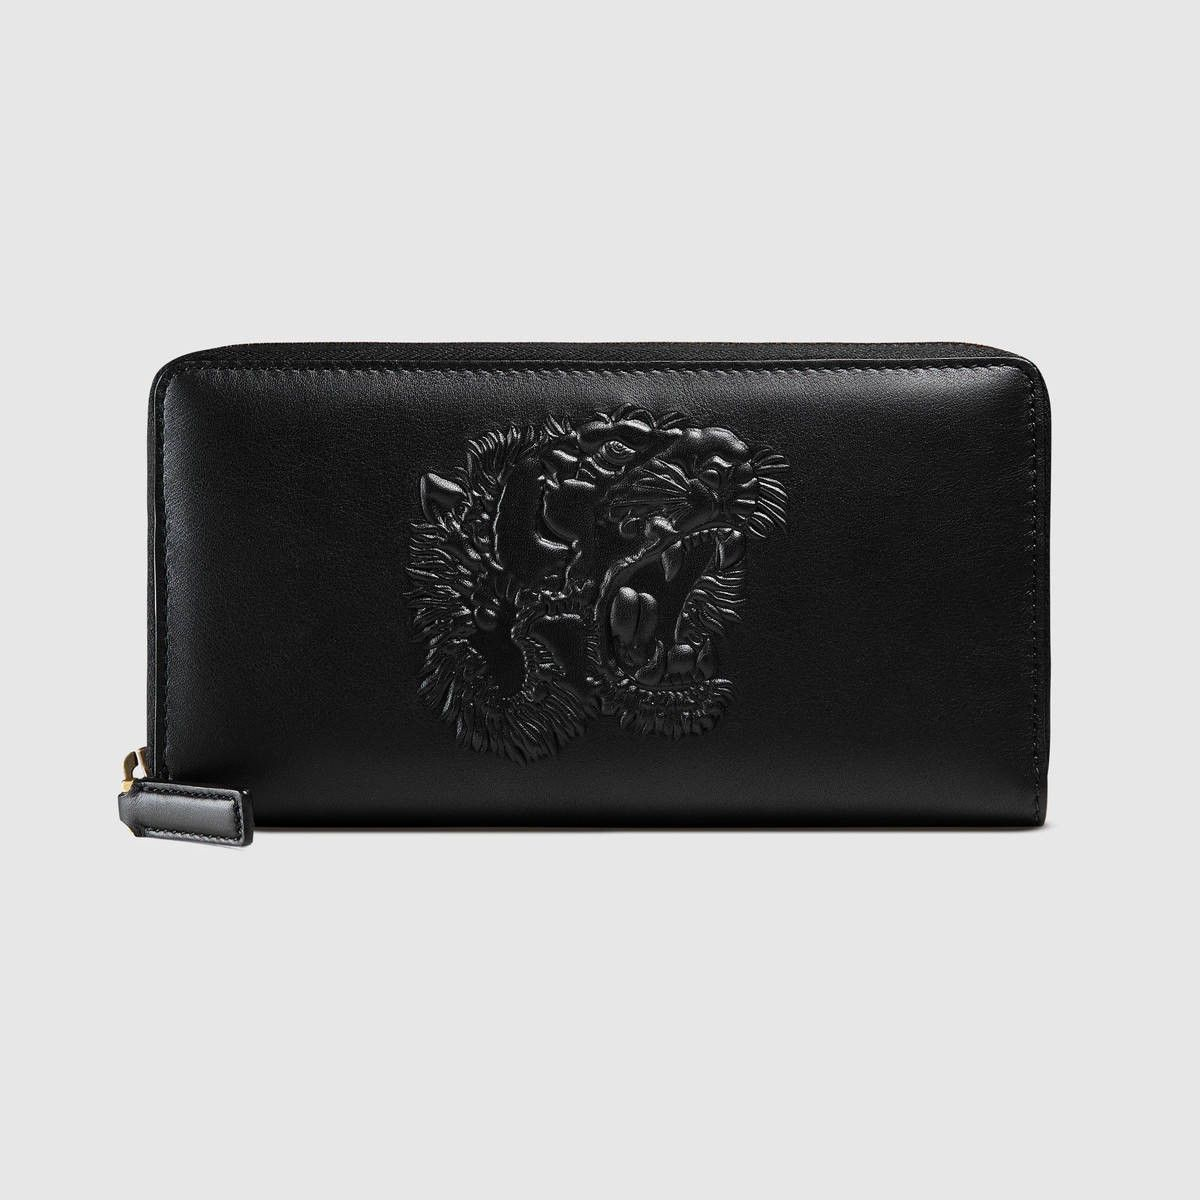 23a7299bc70c GUCCI Tiger Embossed Zip Around Wallet - Black Embossed Leather. #gucci #all